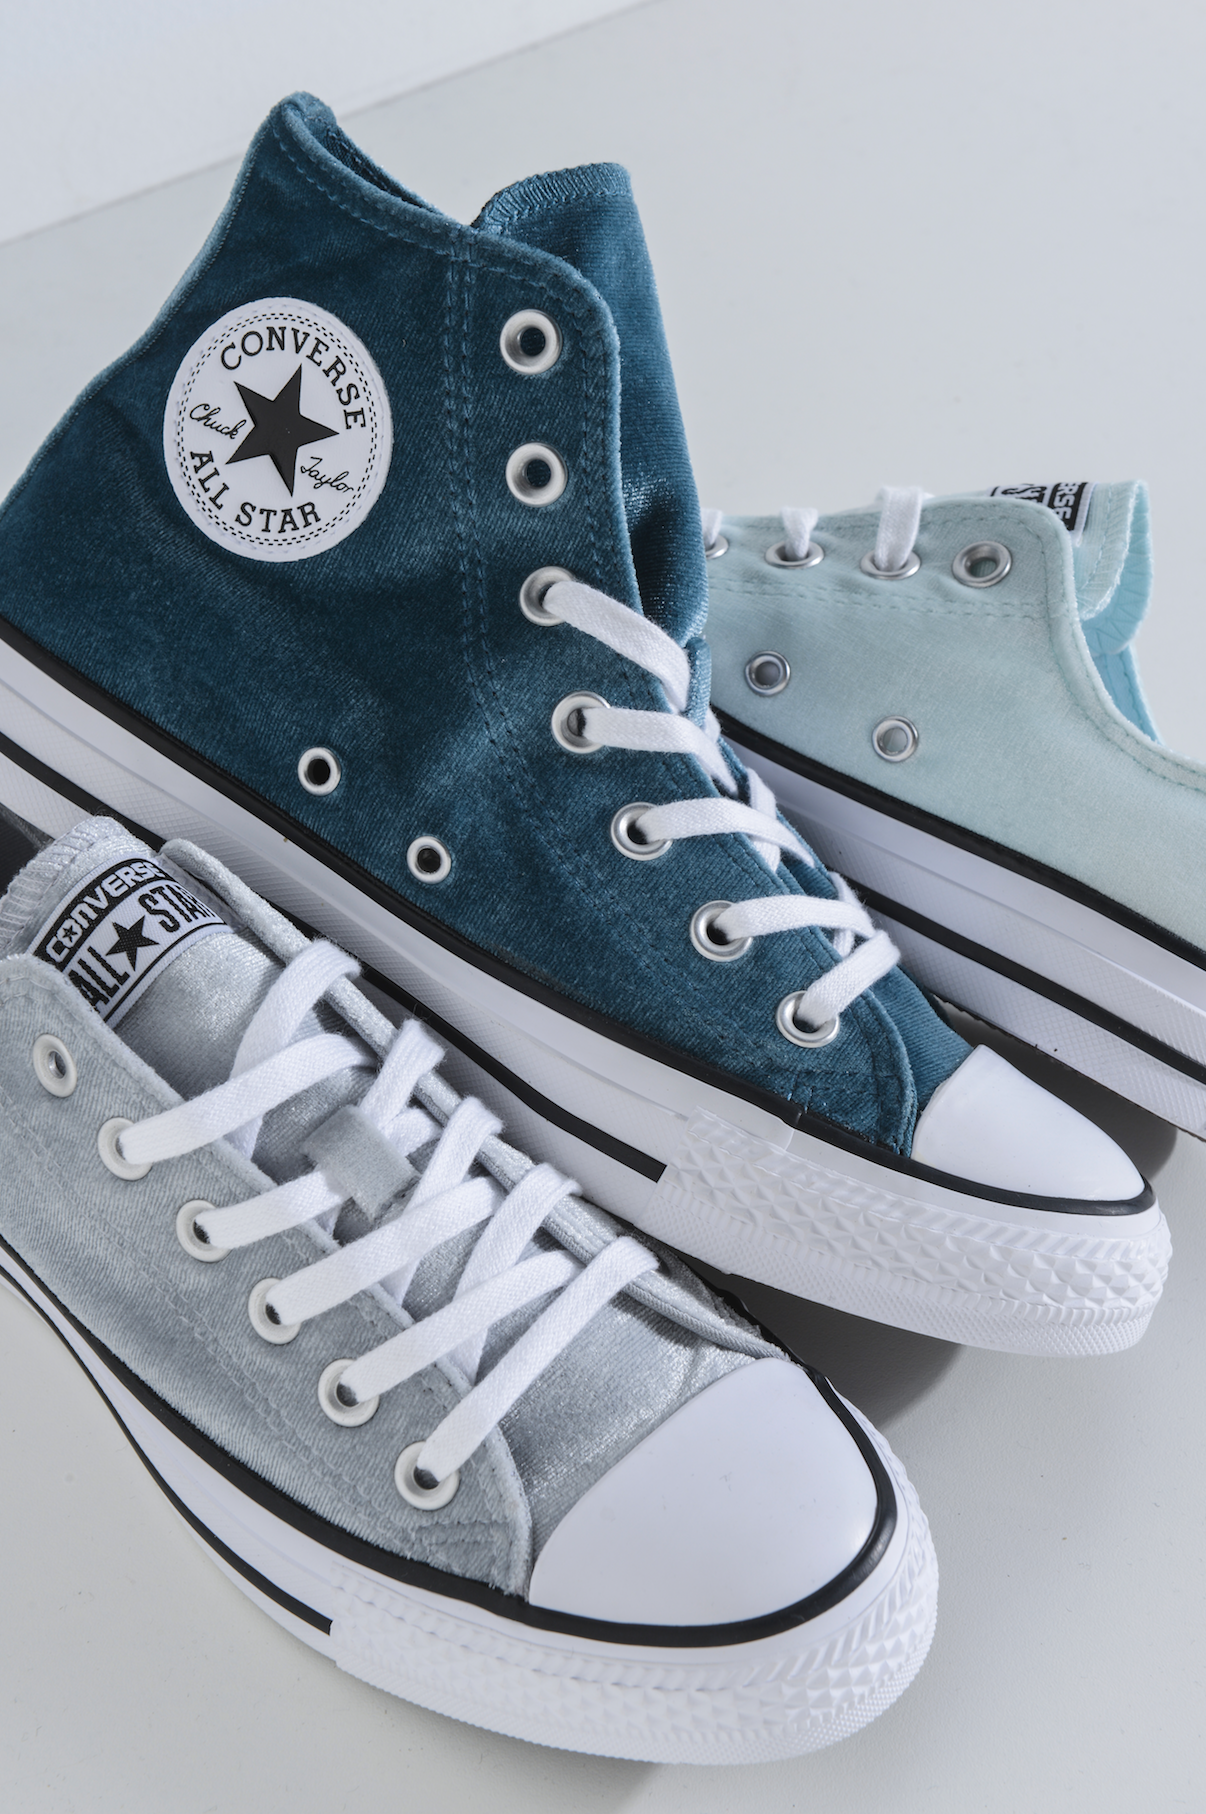 BlueGrey Converse Shoes,Womens Converse Shoes,Converse